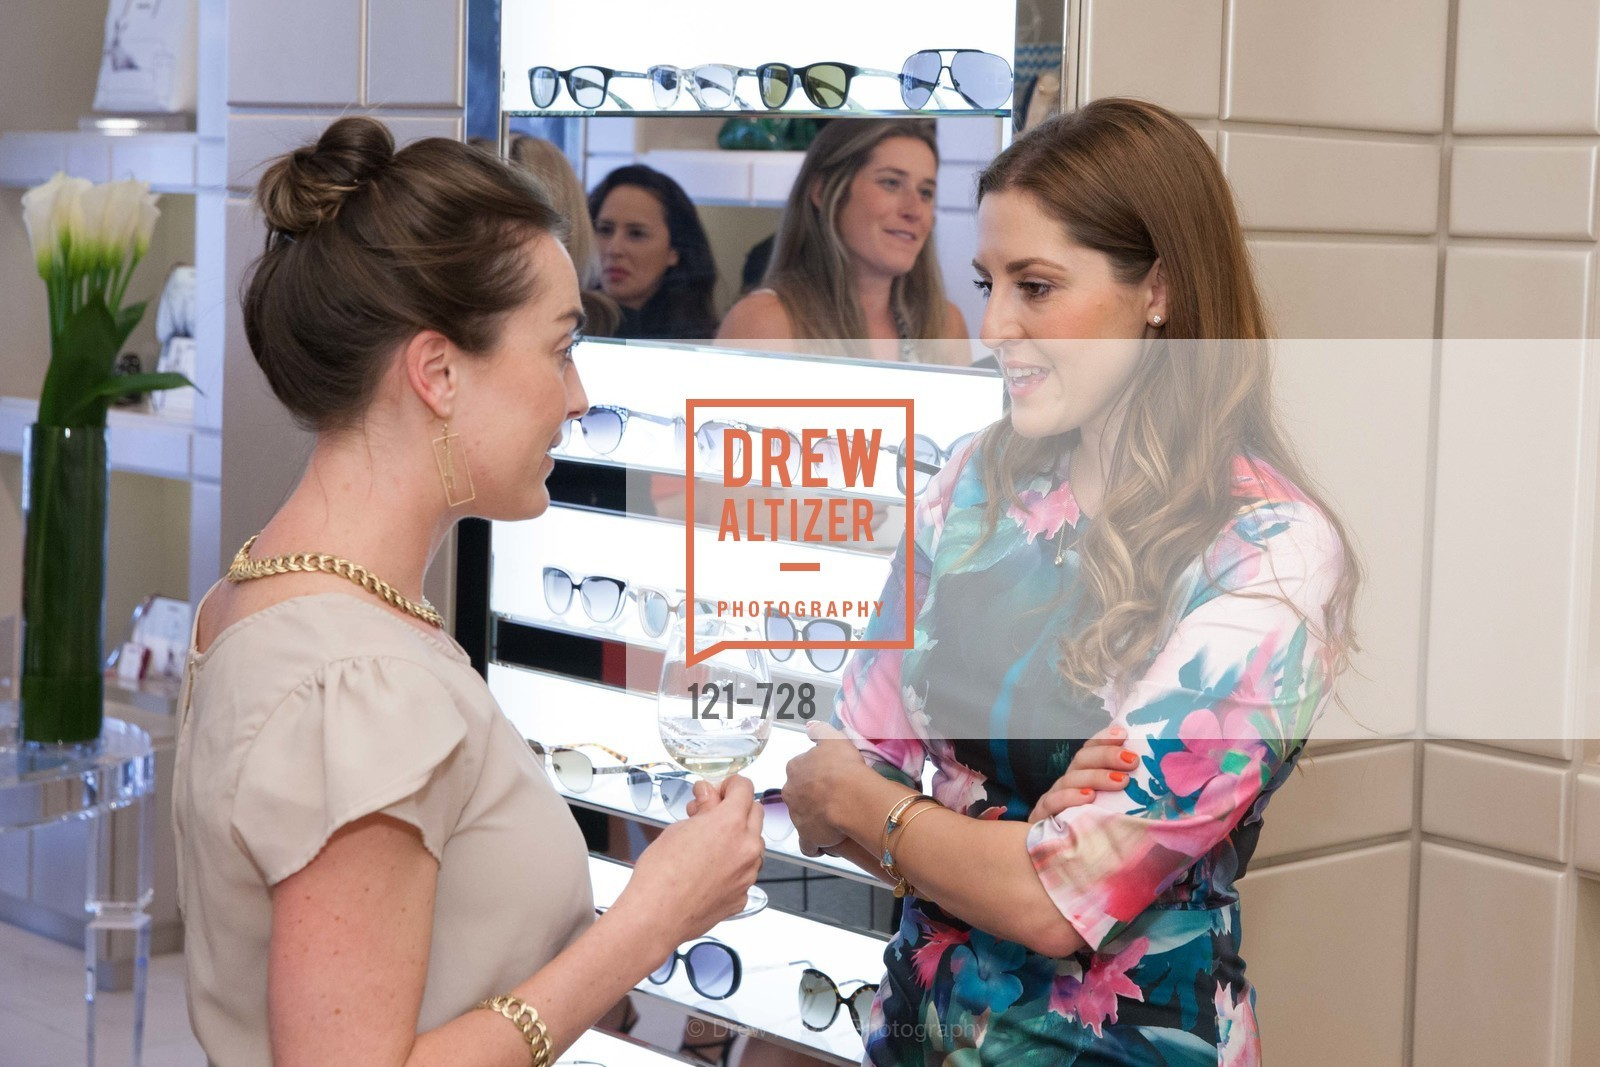 Extras, JIMMY CHOO Bubbles, Bites & Stiletto's to benefit AirCraft Casualty Emotional Support Services (ACCESS), May 14th, 2015, Photo,Drew Altizer, Drew Altizer Photography, full-service agency, private events, San Francisco photographer, photographer california